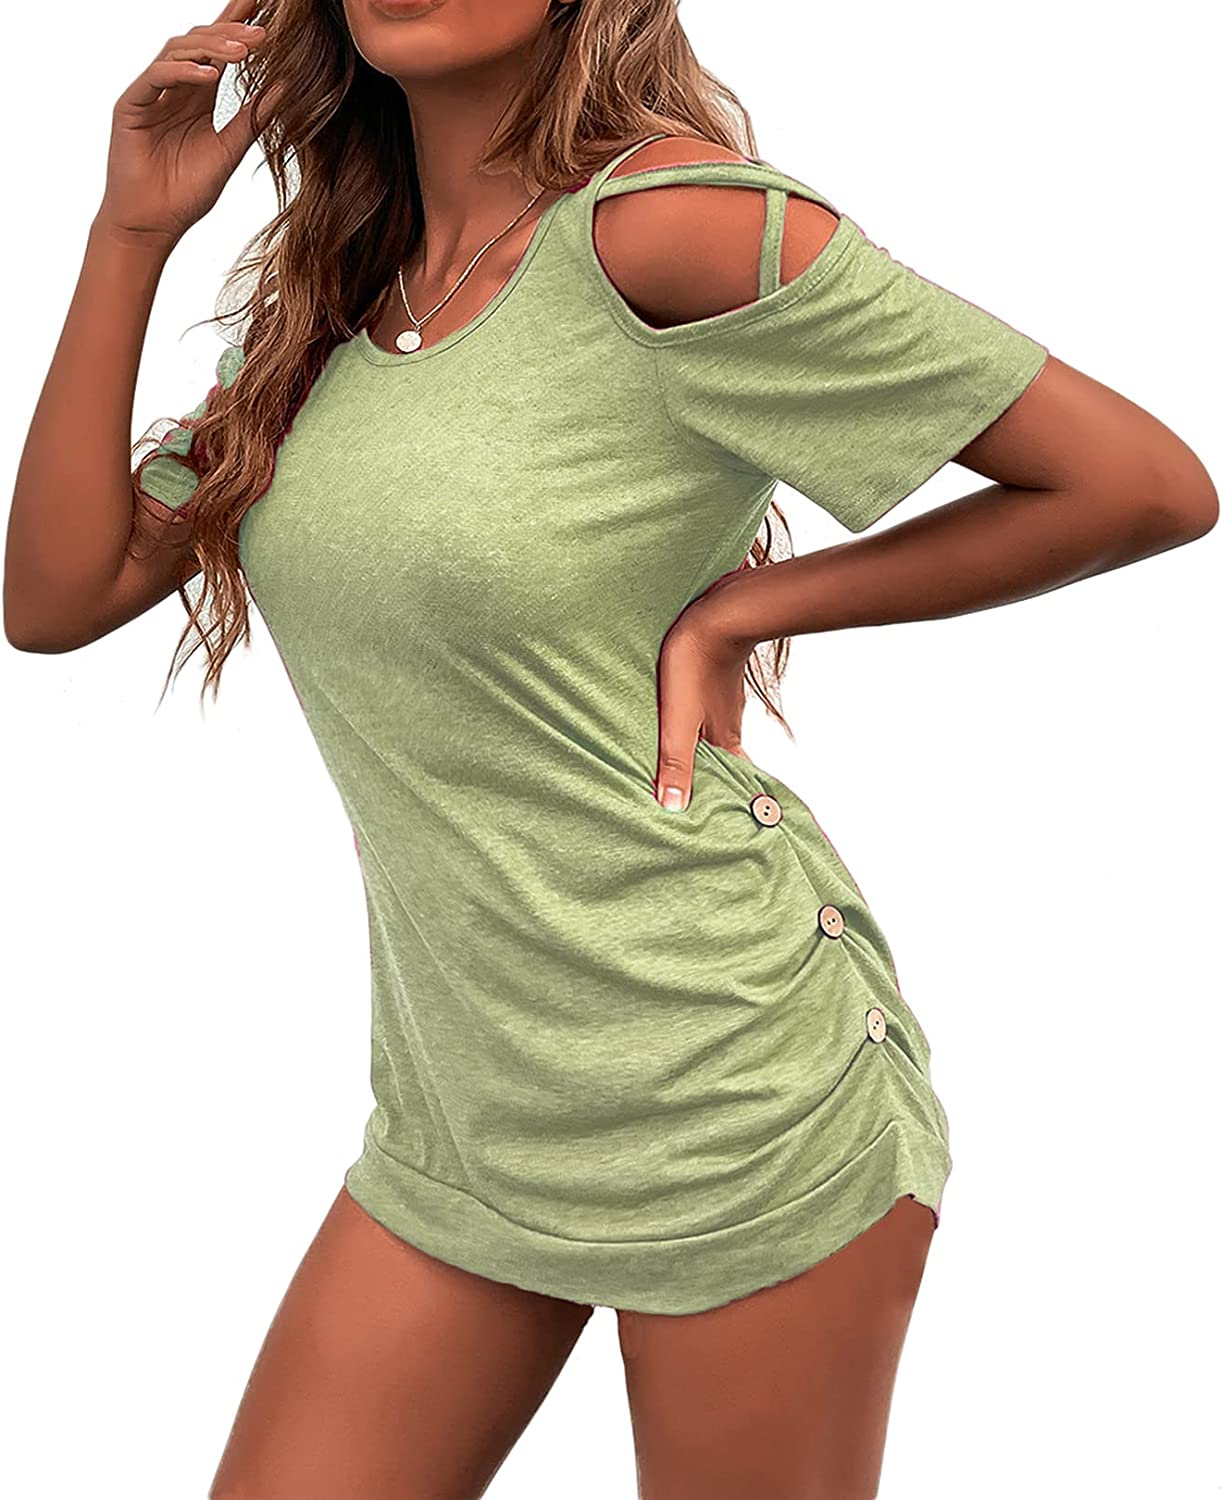 AUOMITH Women Summer Tops Short Sleeve T Shirt Tunics Tops Round Neck Strappy Cold Shoulder Casual Button Down Tops for Women